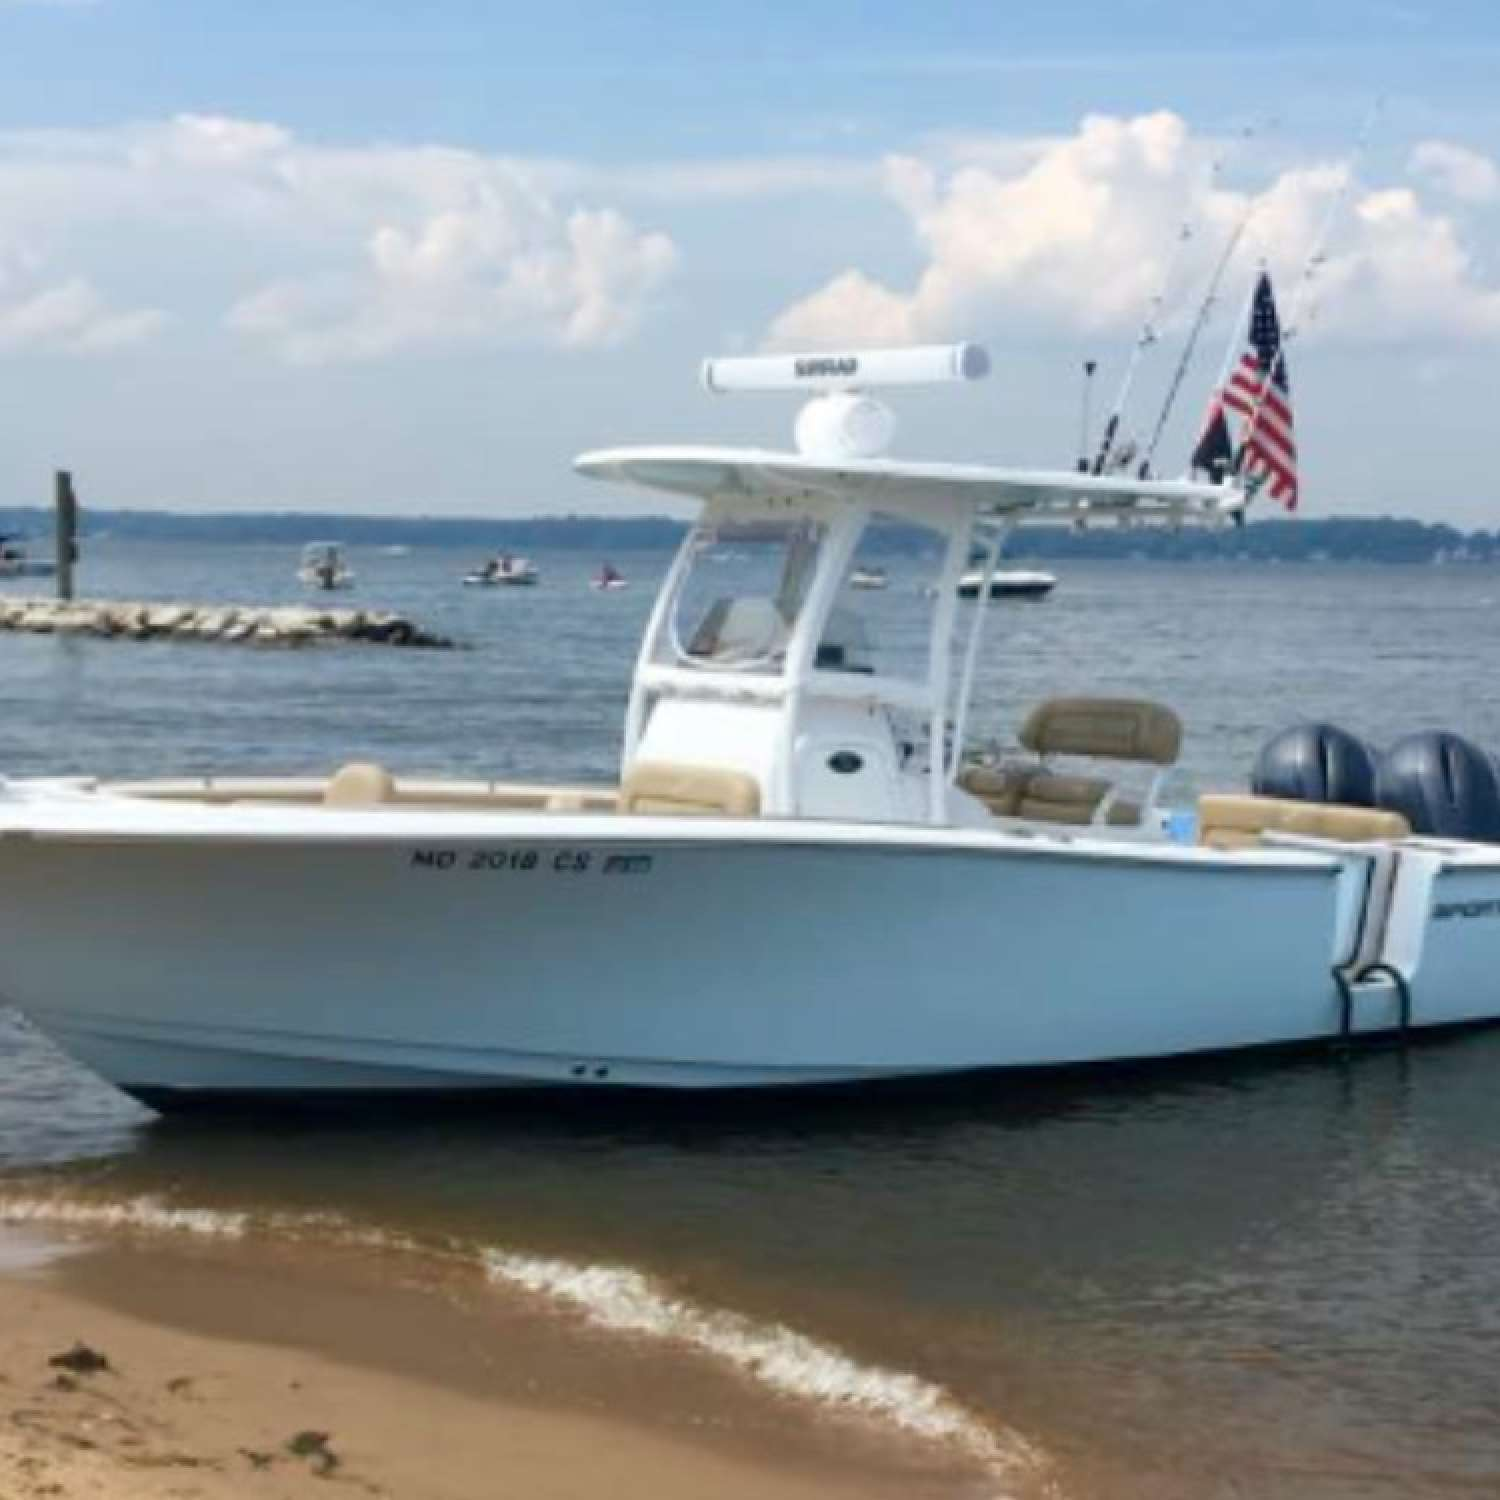 Title: Some Beach - On board their Sportsman Heritage 251 Center Console - Location: Baltimore, Maryland. Participating in the Photo Contest #SportsmanSeptember2016